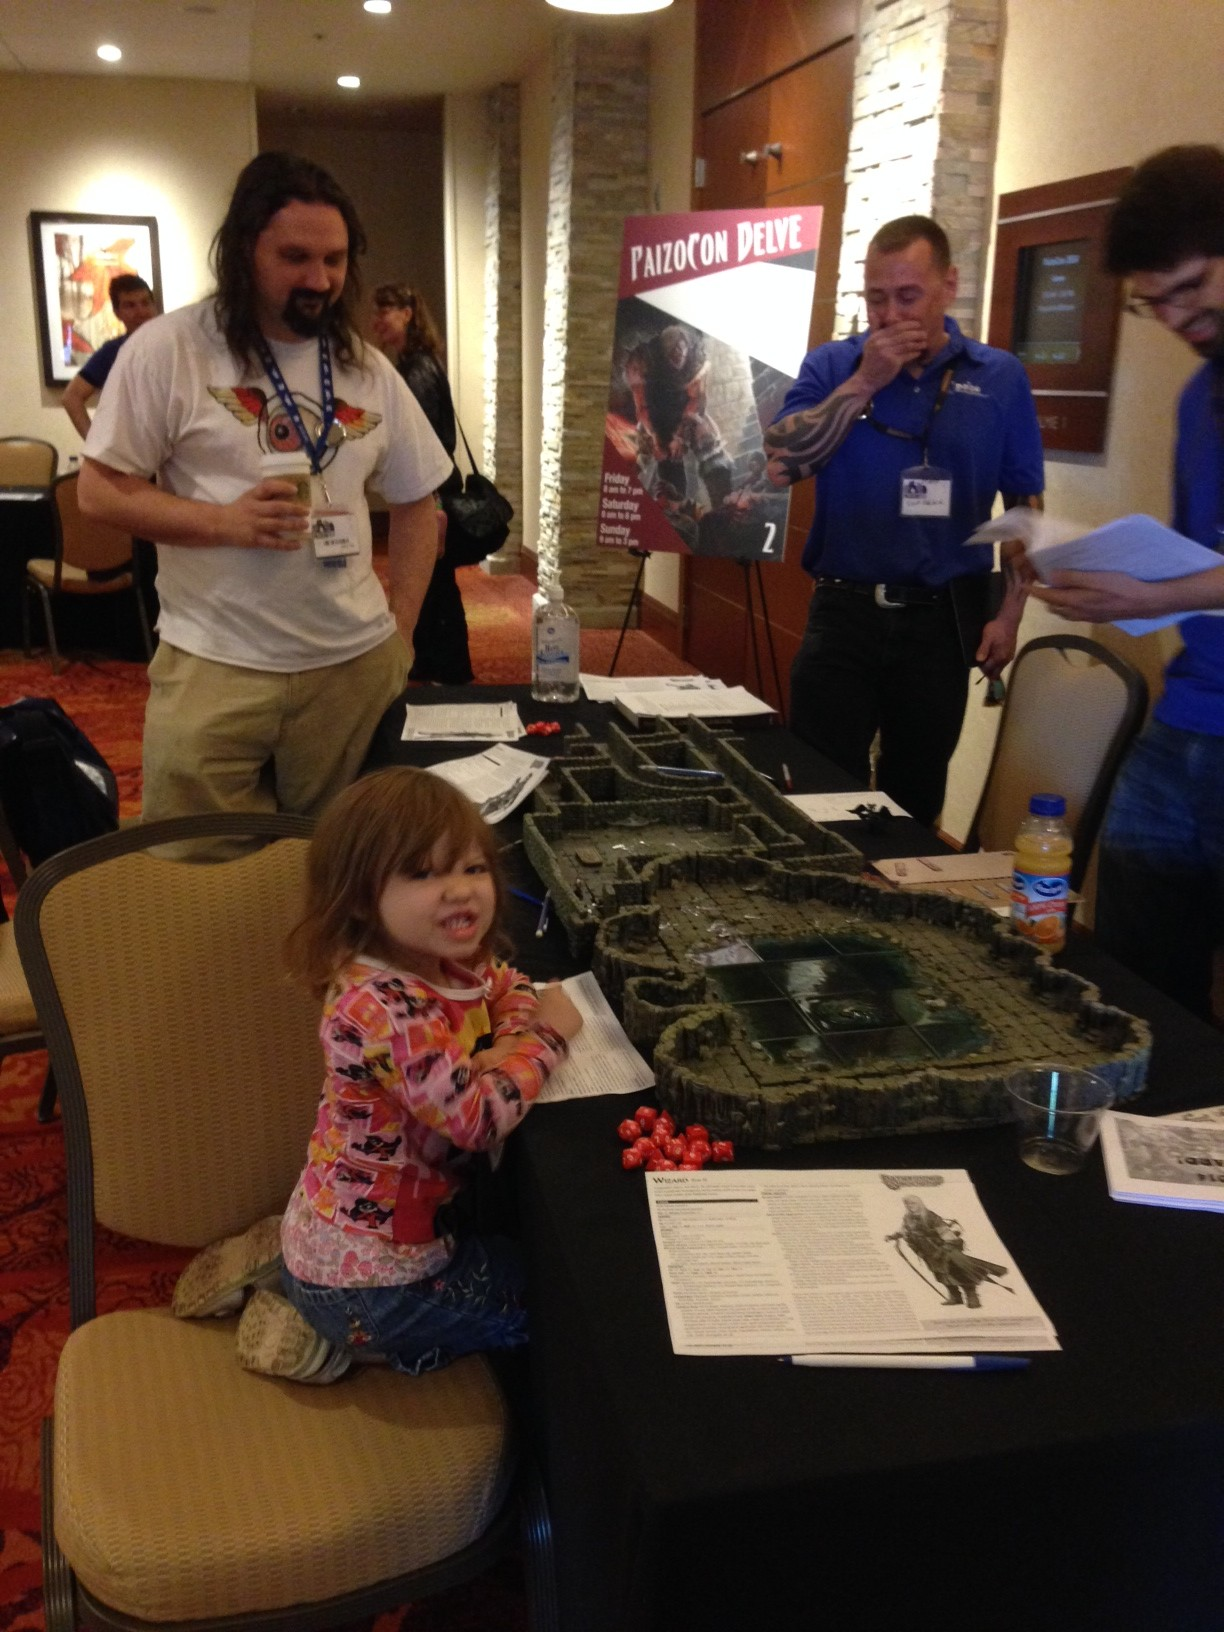 PaizoCon 2014 - A Young Gamer